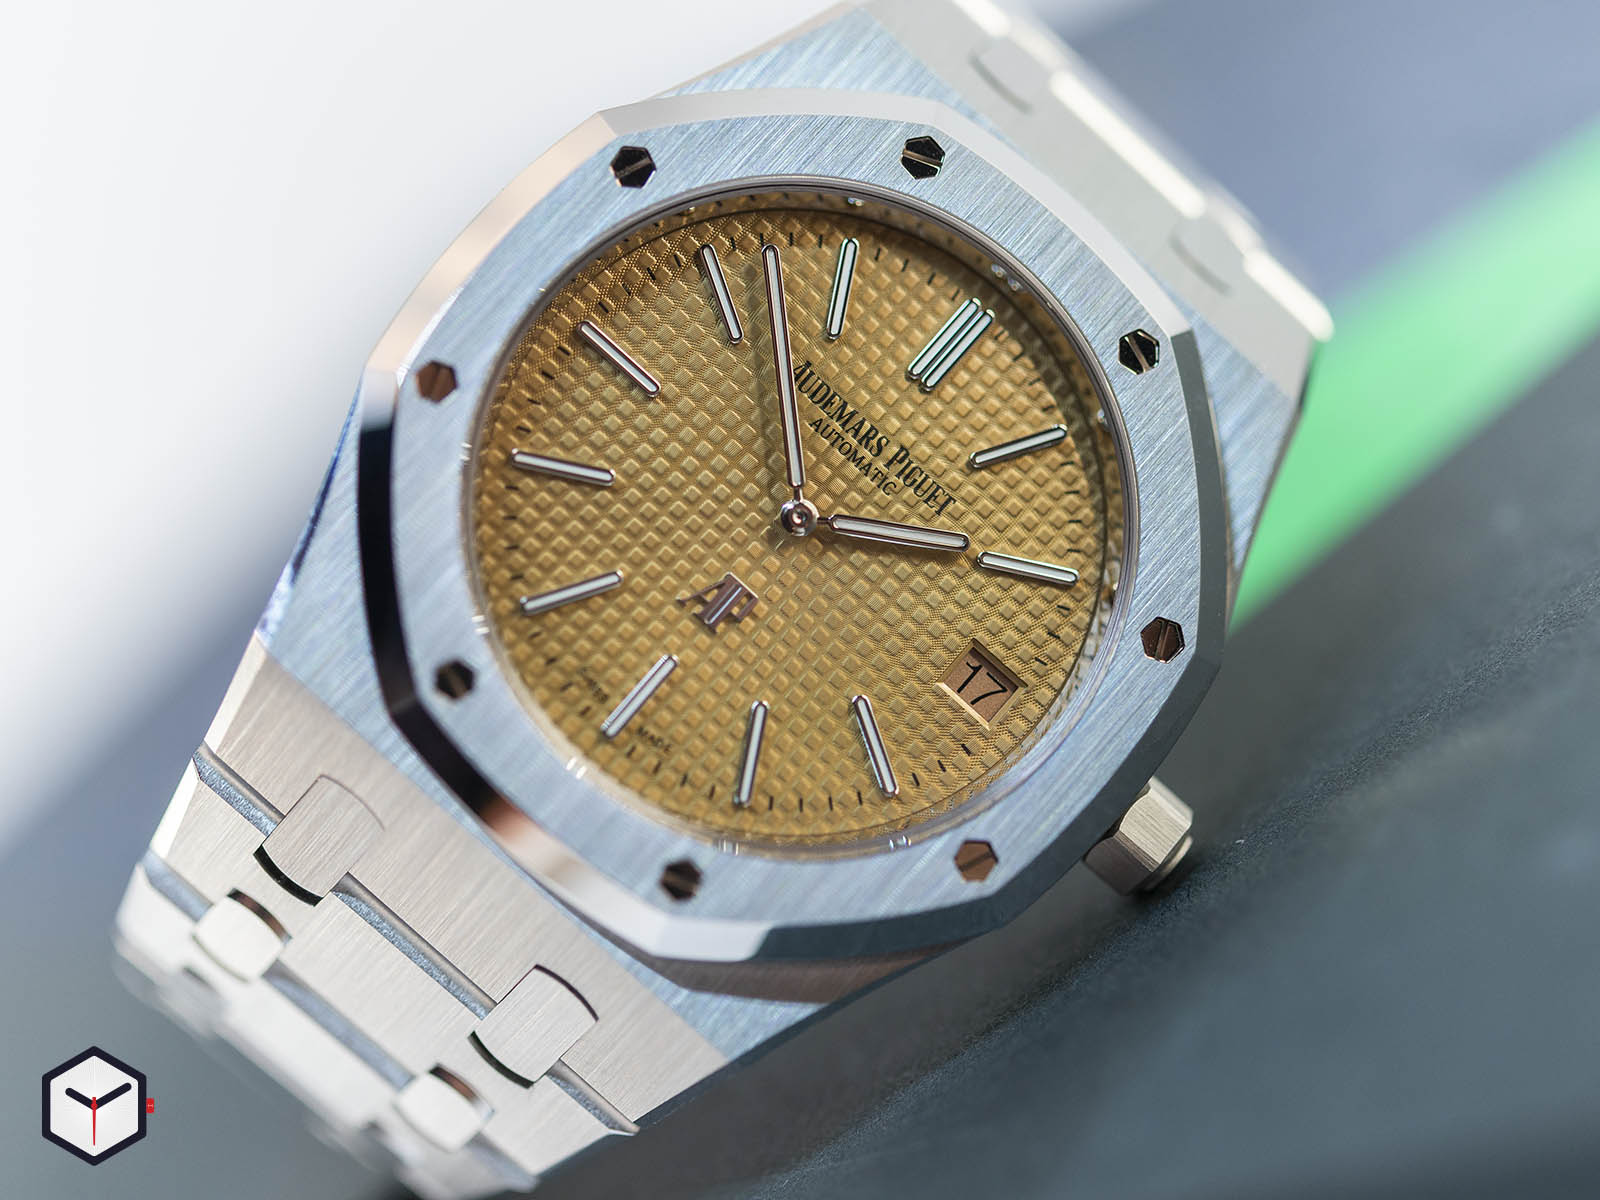 15202bc-oo-1240bc-01-audemars-piguet-royal-oak-jumbo-extra-thin-4.jpg